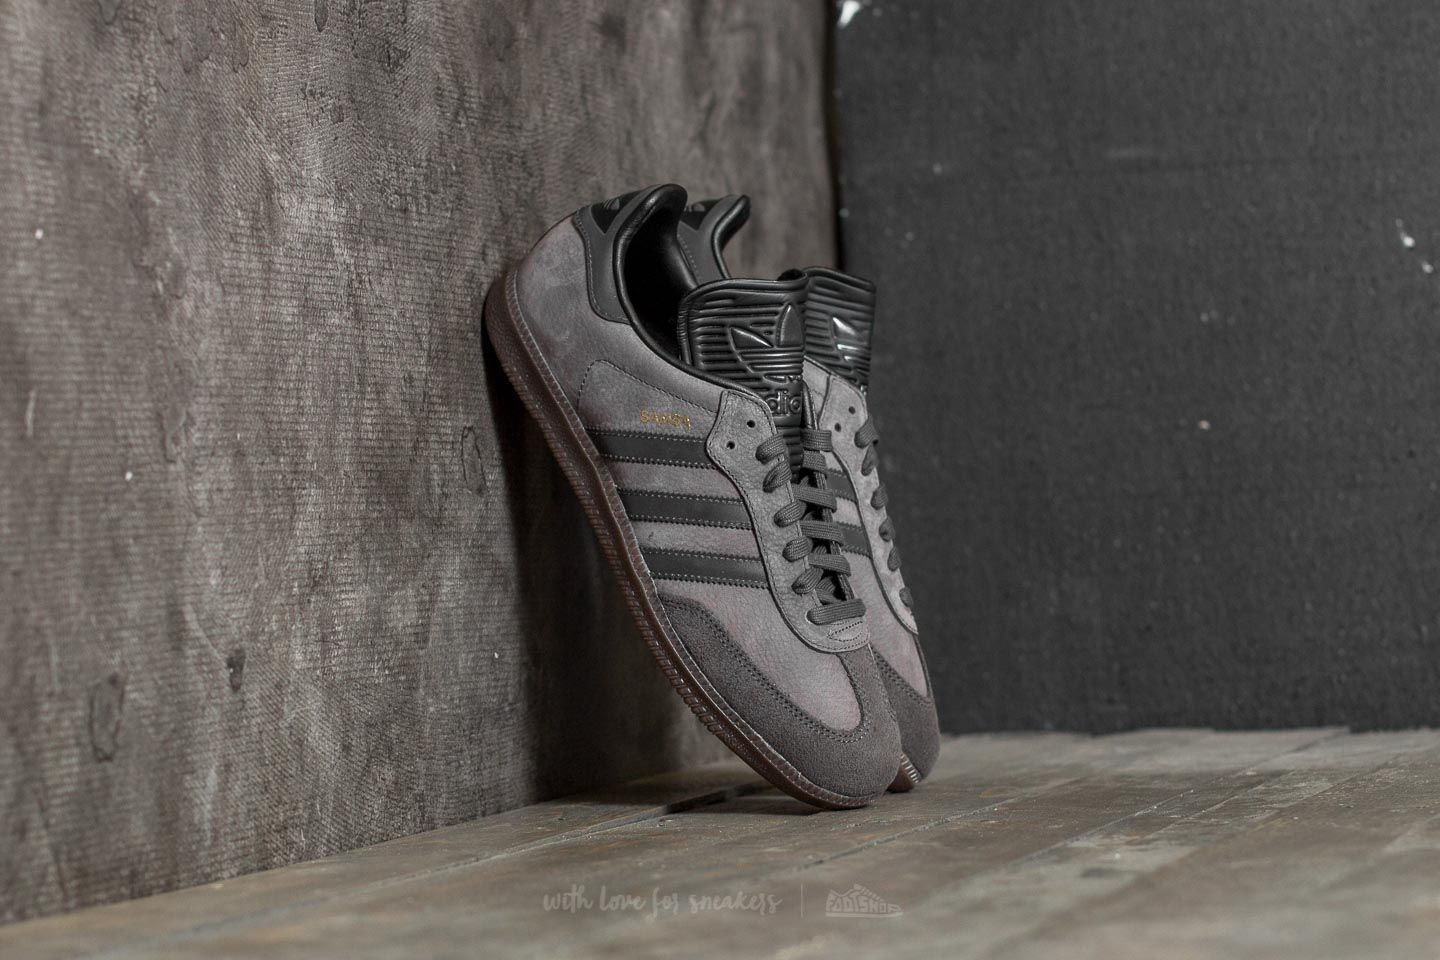 on the other hand, Congrats Wide range  Men's shoes adidas Samba Classic OG Utility Black/ Reflective/ Core Black |  Footshop